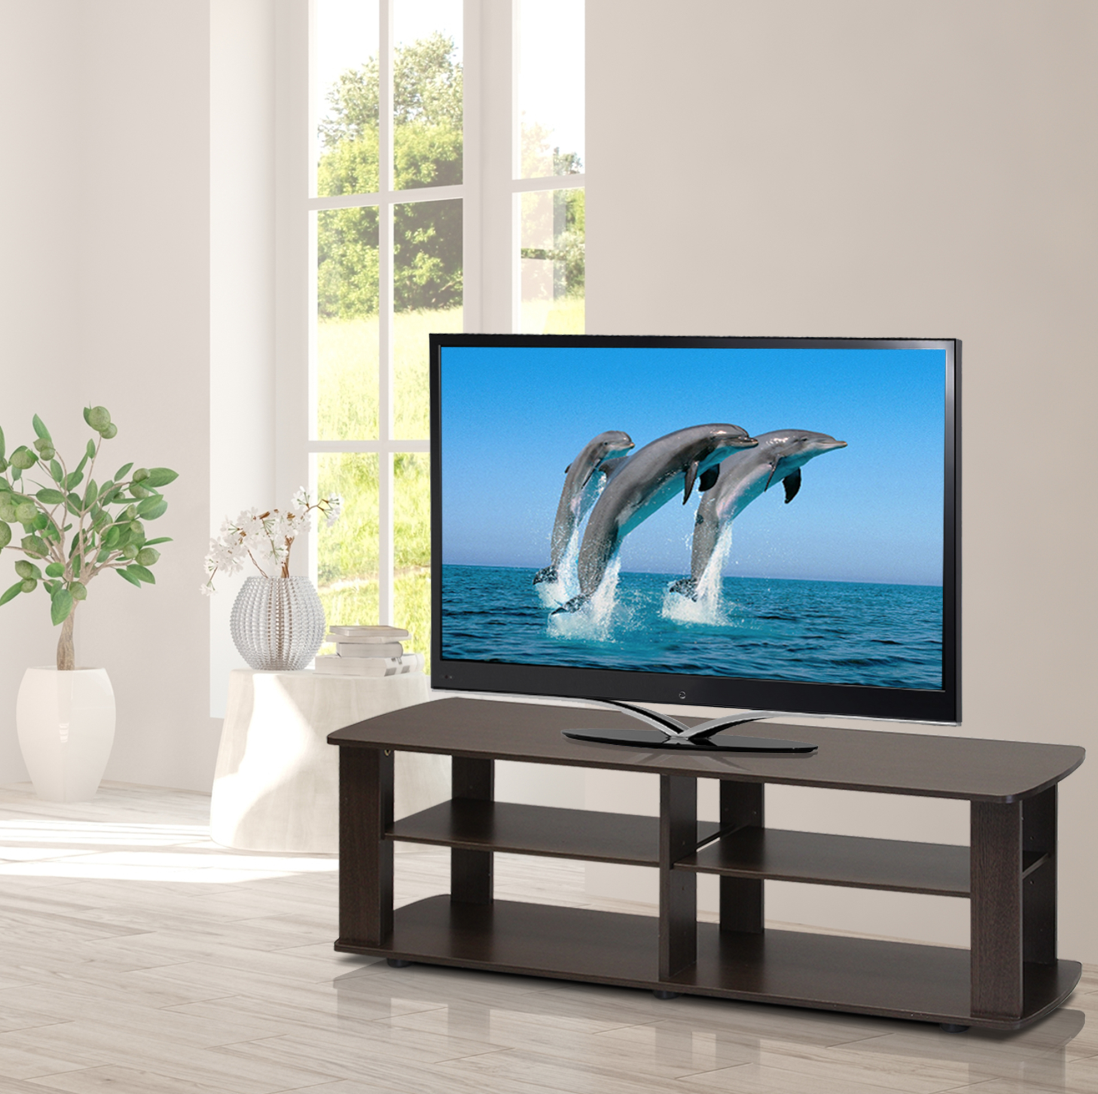 Wood TV Entertainment Stand for Flat Screen LED Universal Lo